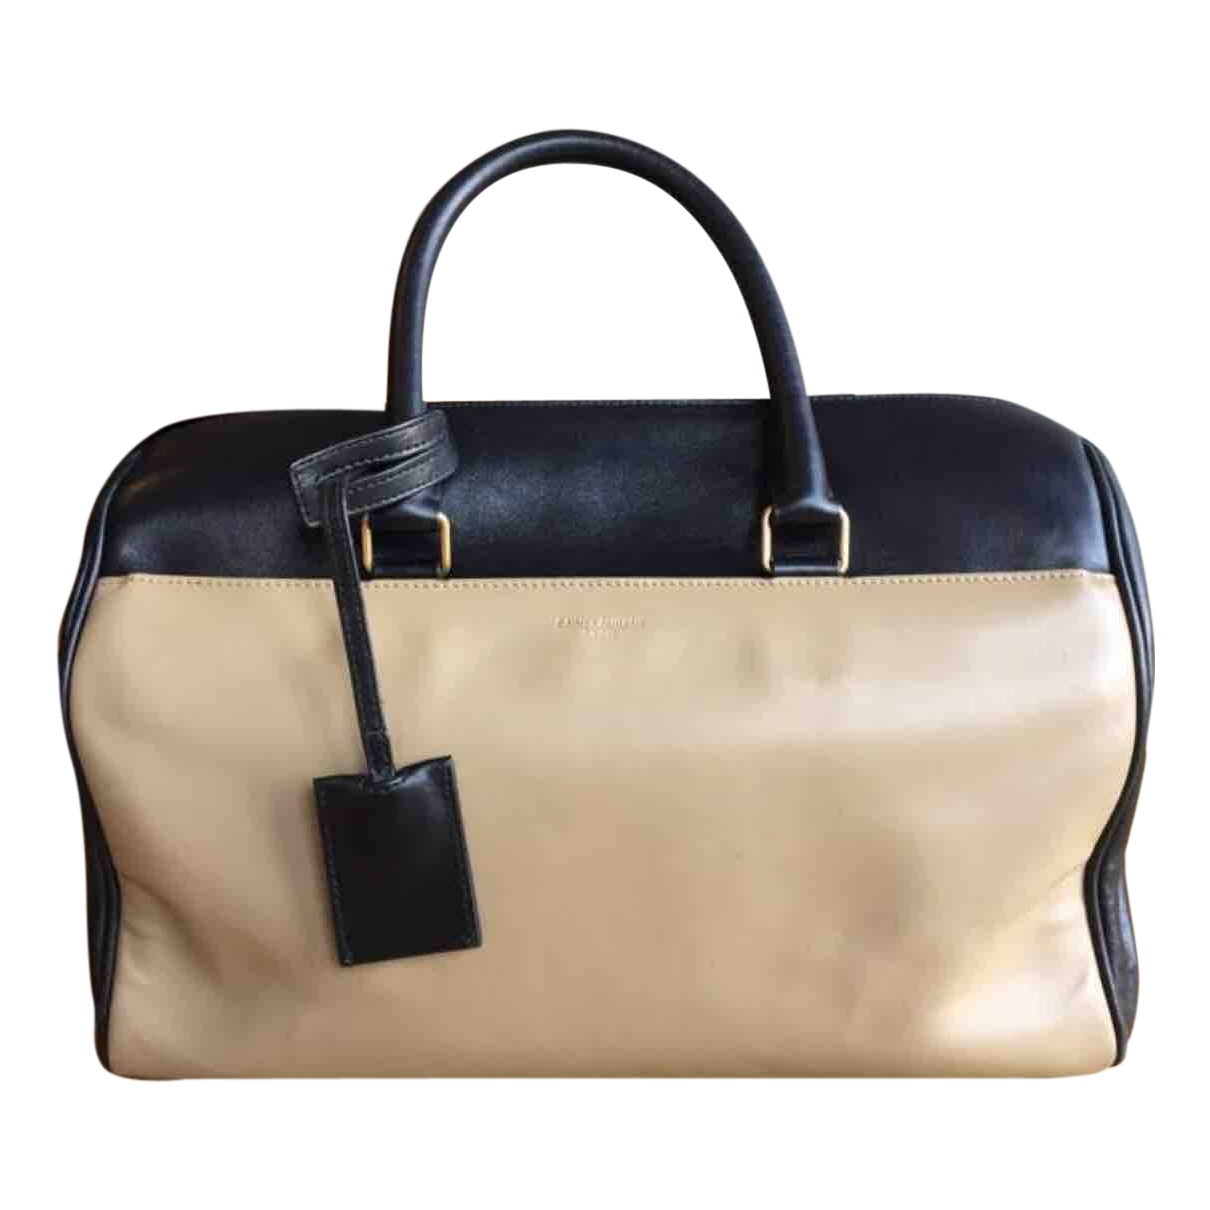 Saint Laurent Duffle Beige Leather handbag for Women \N